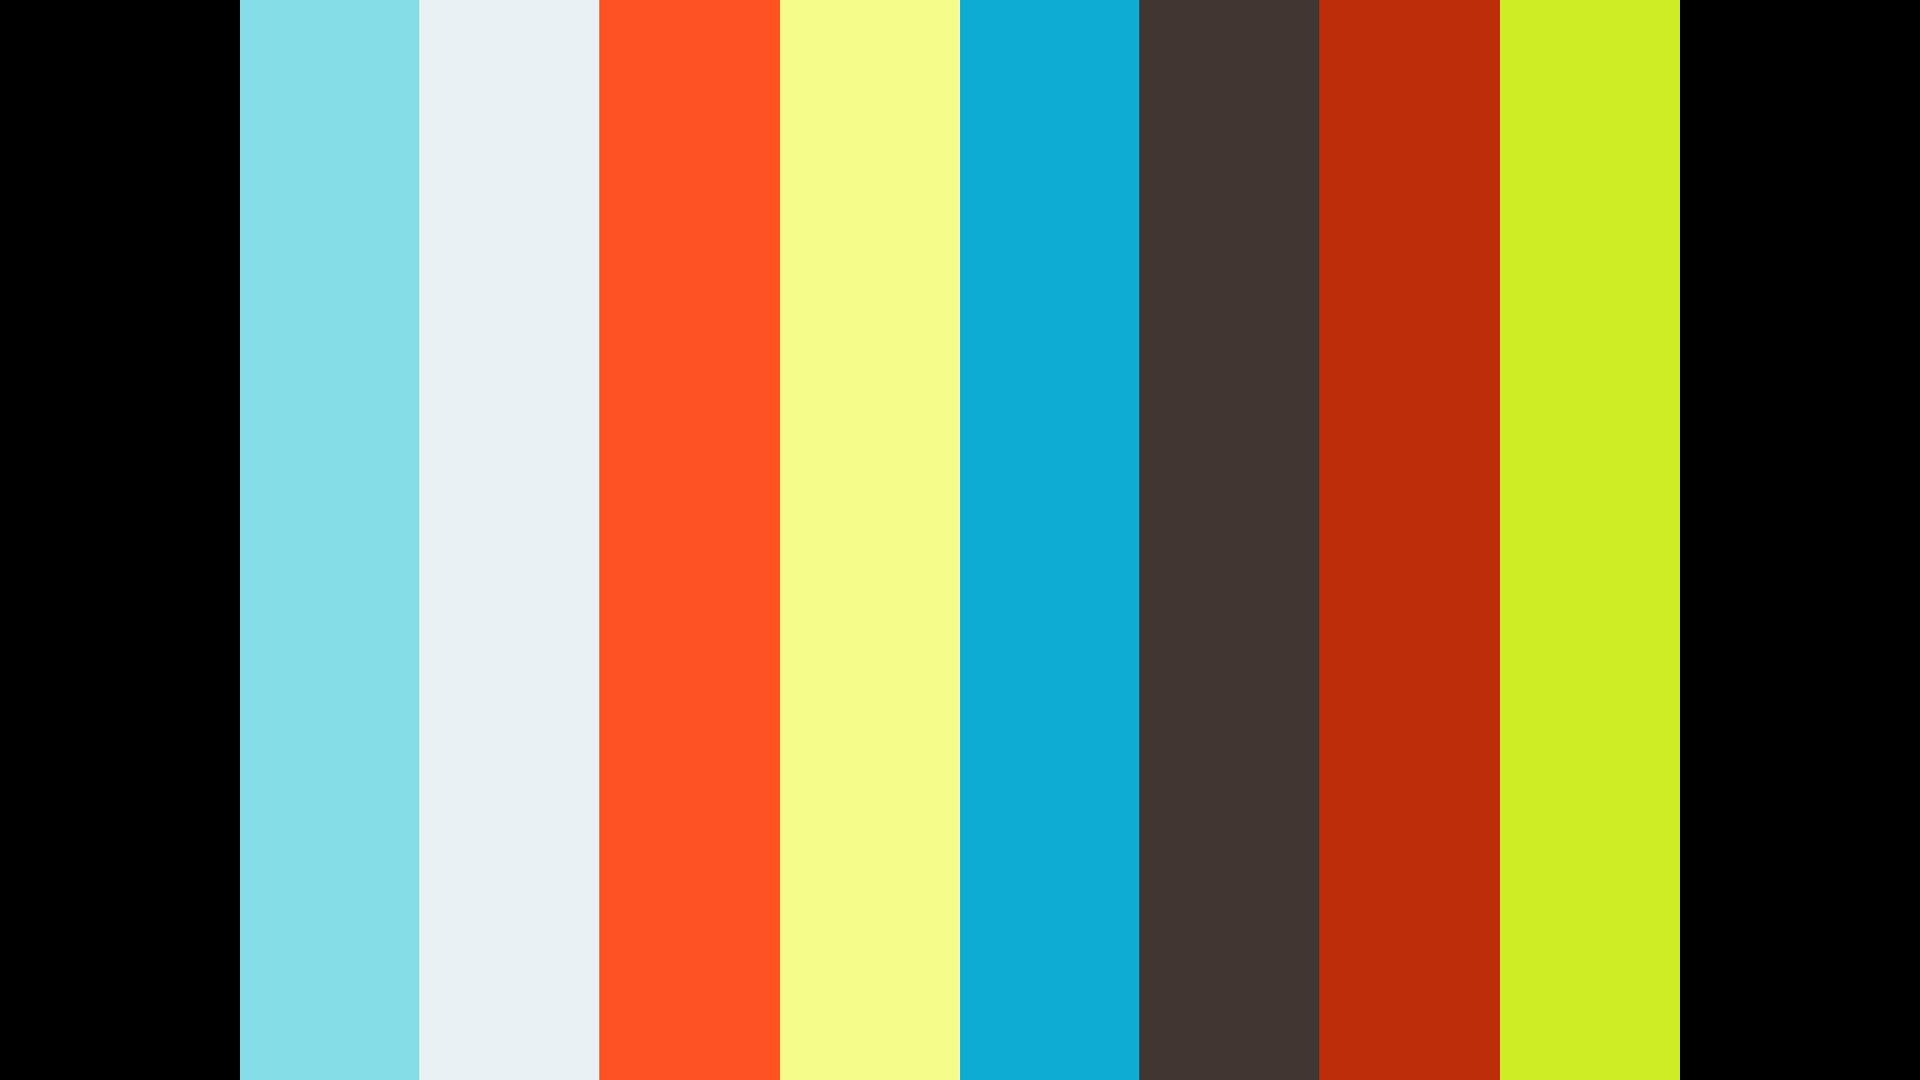 Talk by Birkan Tas (Panel I)